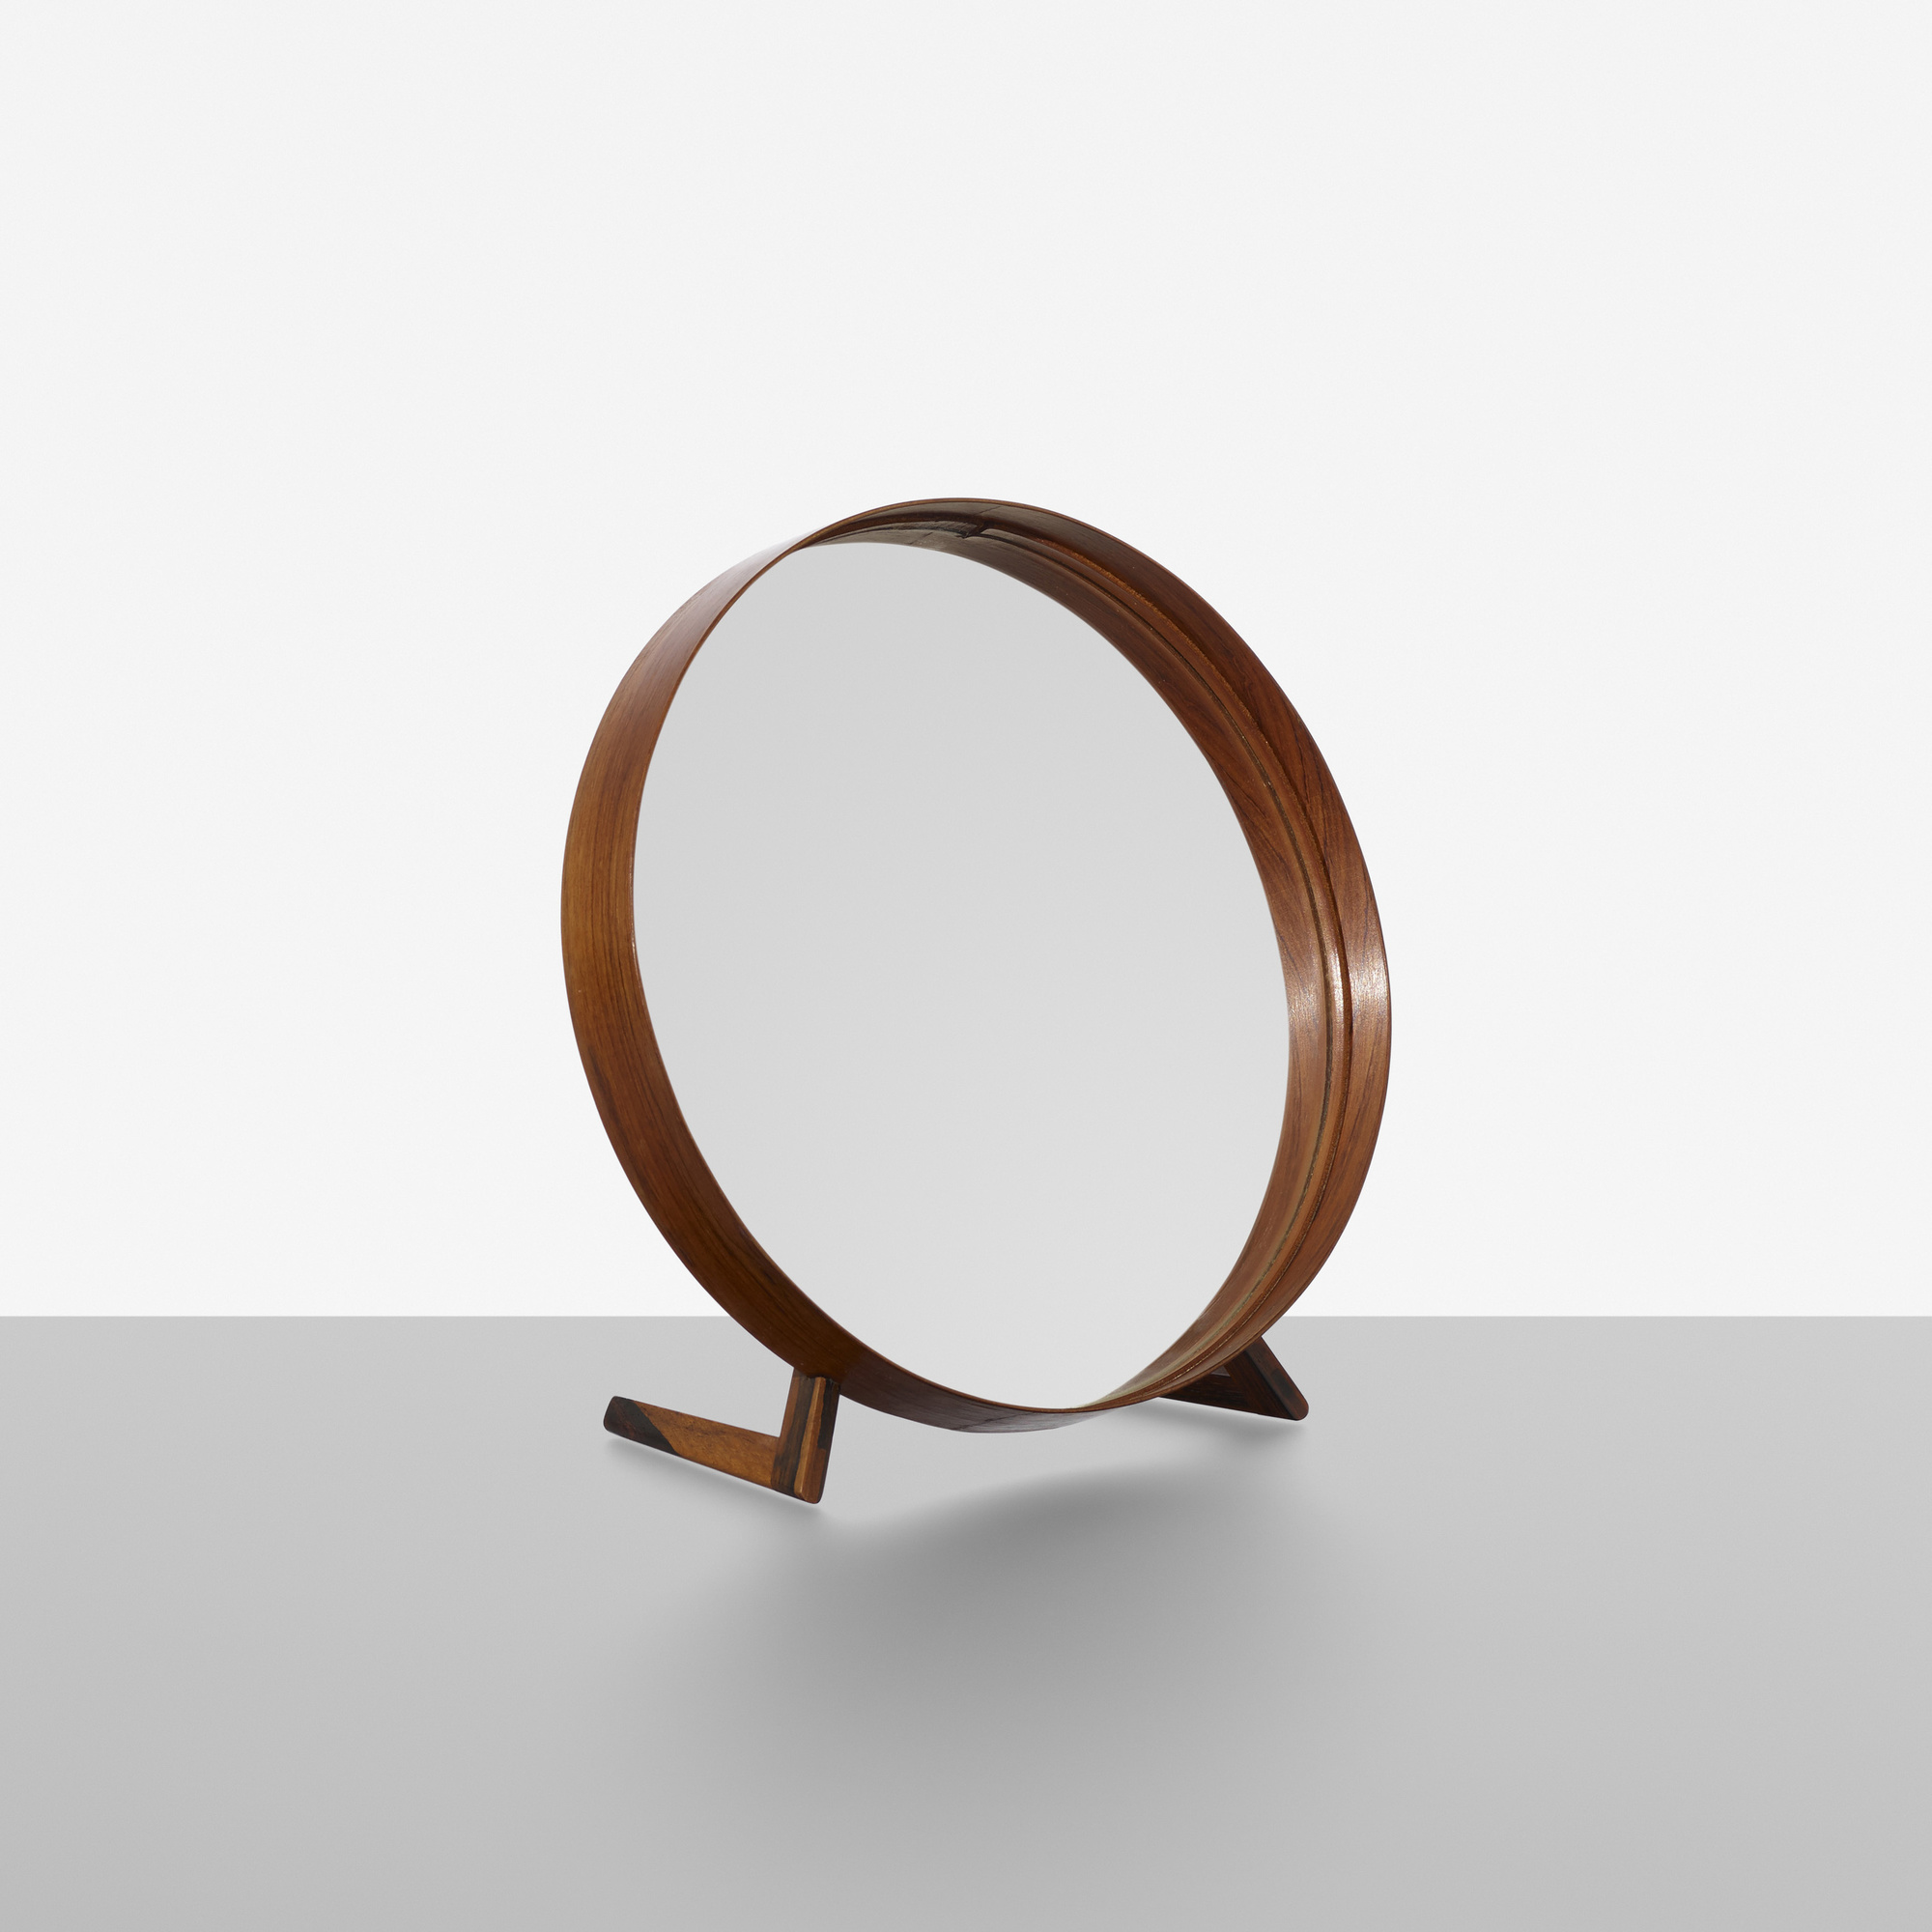 221: Nils Troed / table mirror (1 of 2)